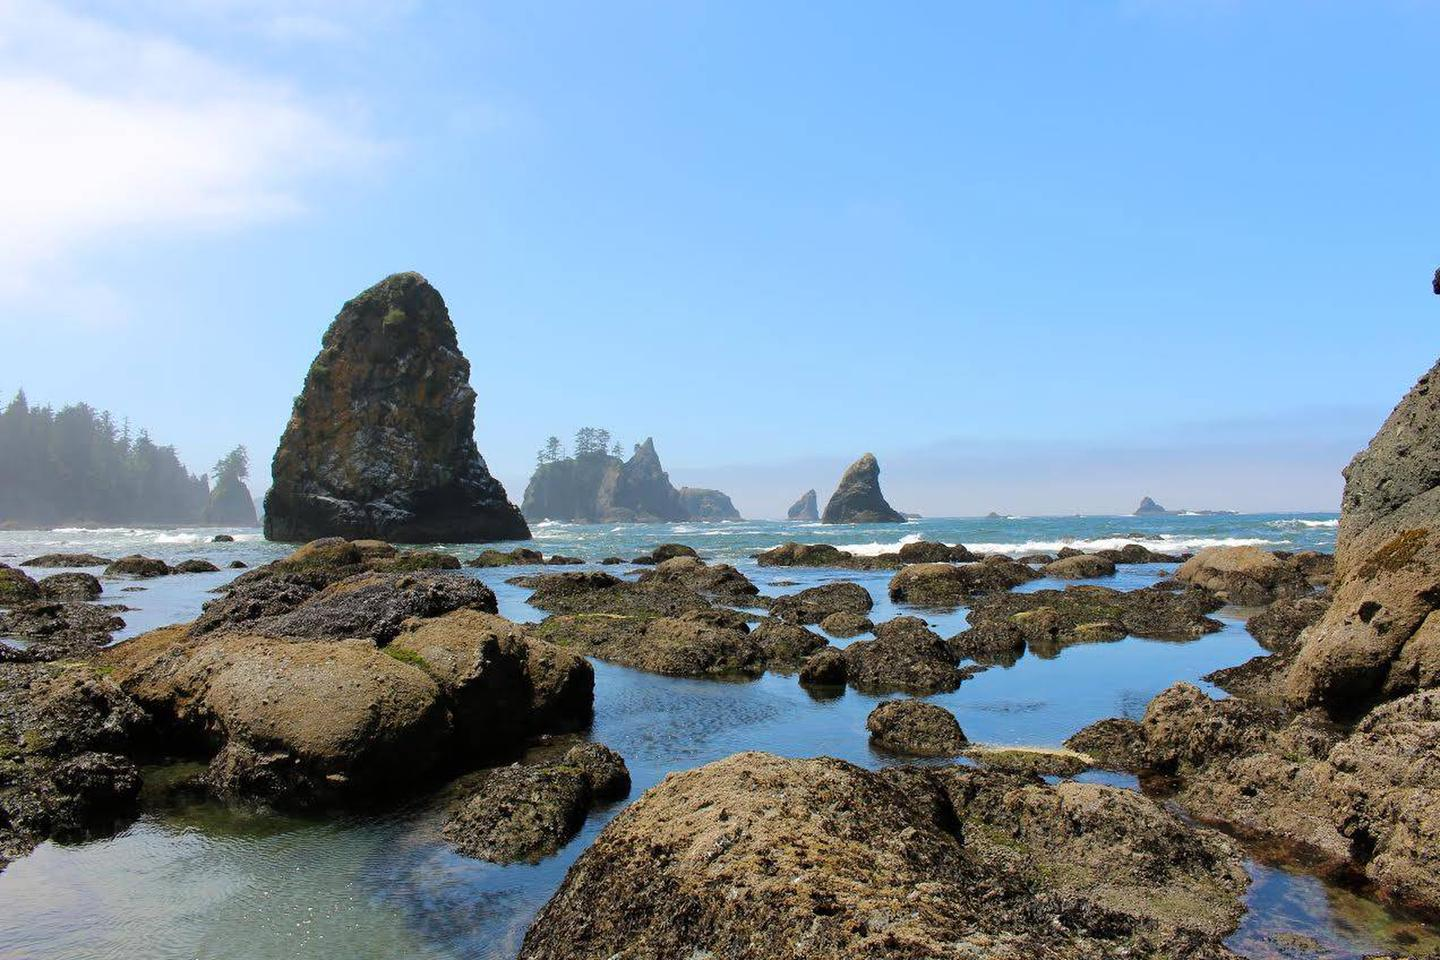 View of Pacific Ocean framed by sea stacks, with tide pools in the foreground.Point of the Arches, Shi Shi Beach